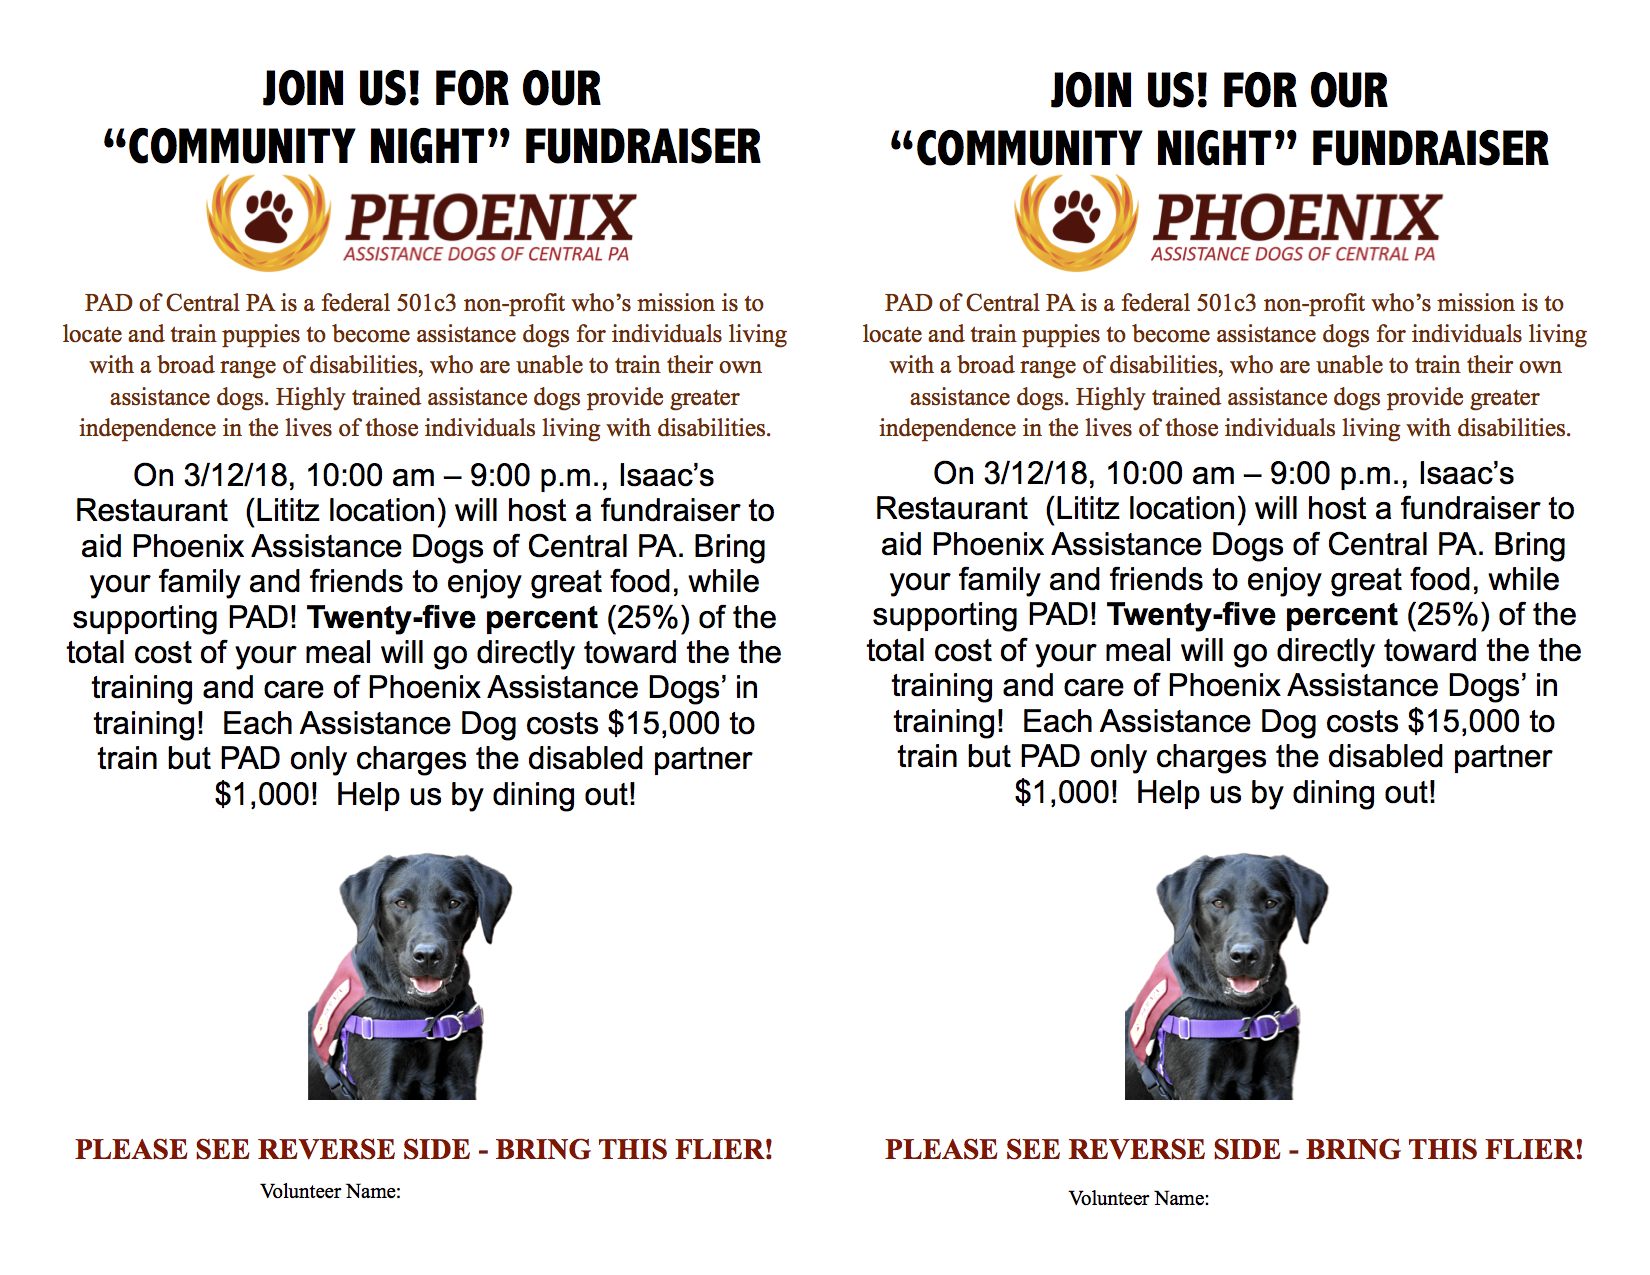 Blog phoenix assistance dogs each assistance dog costs 15000 to train but pad only charges the disabled partner 1000 help us by dining out 1betcityfo Image collections